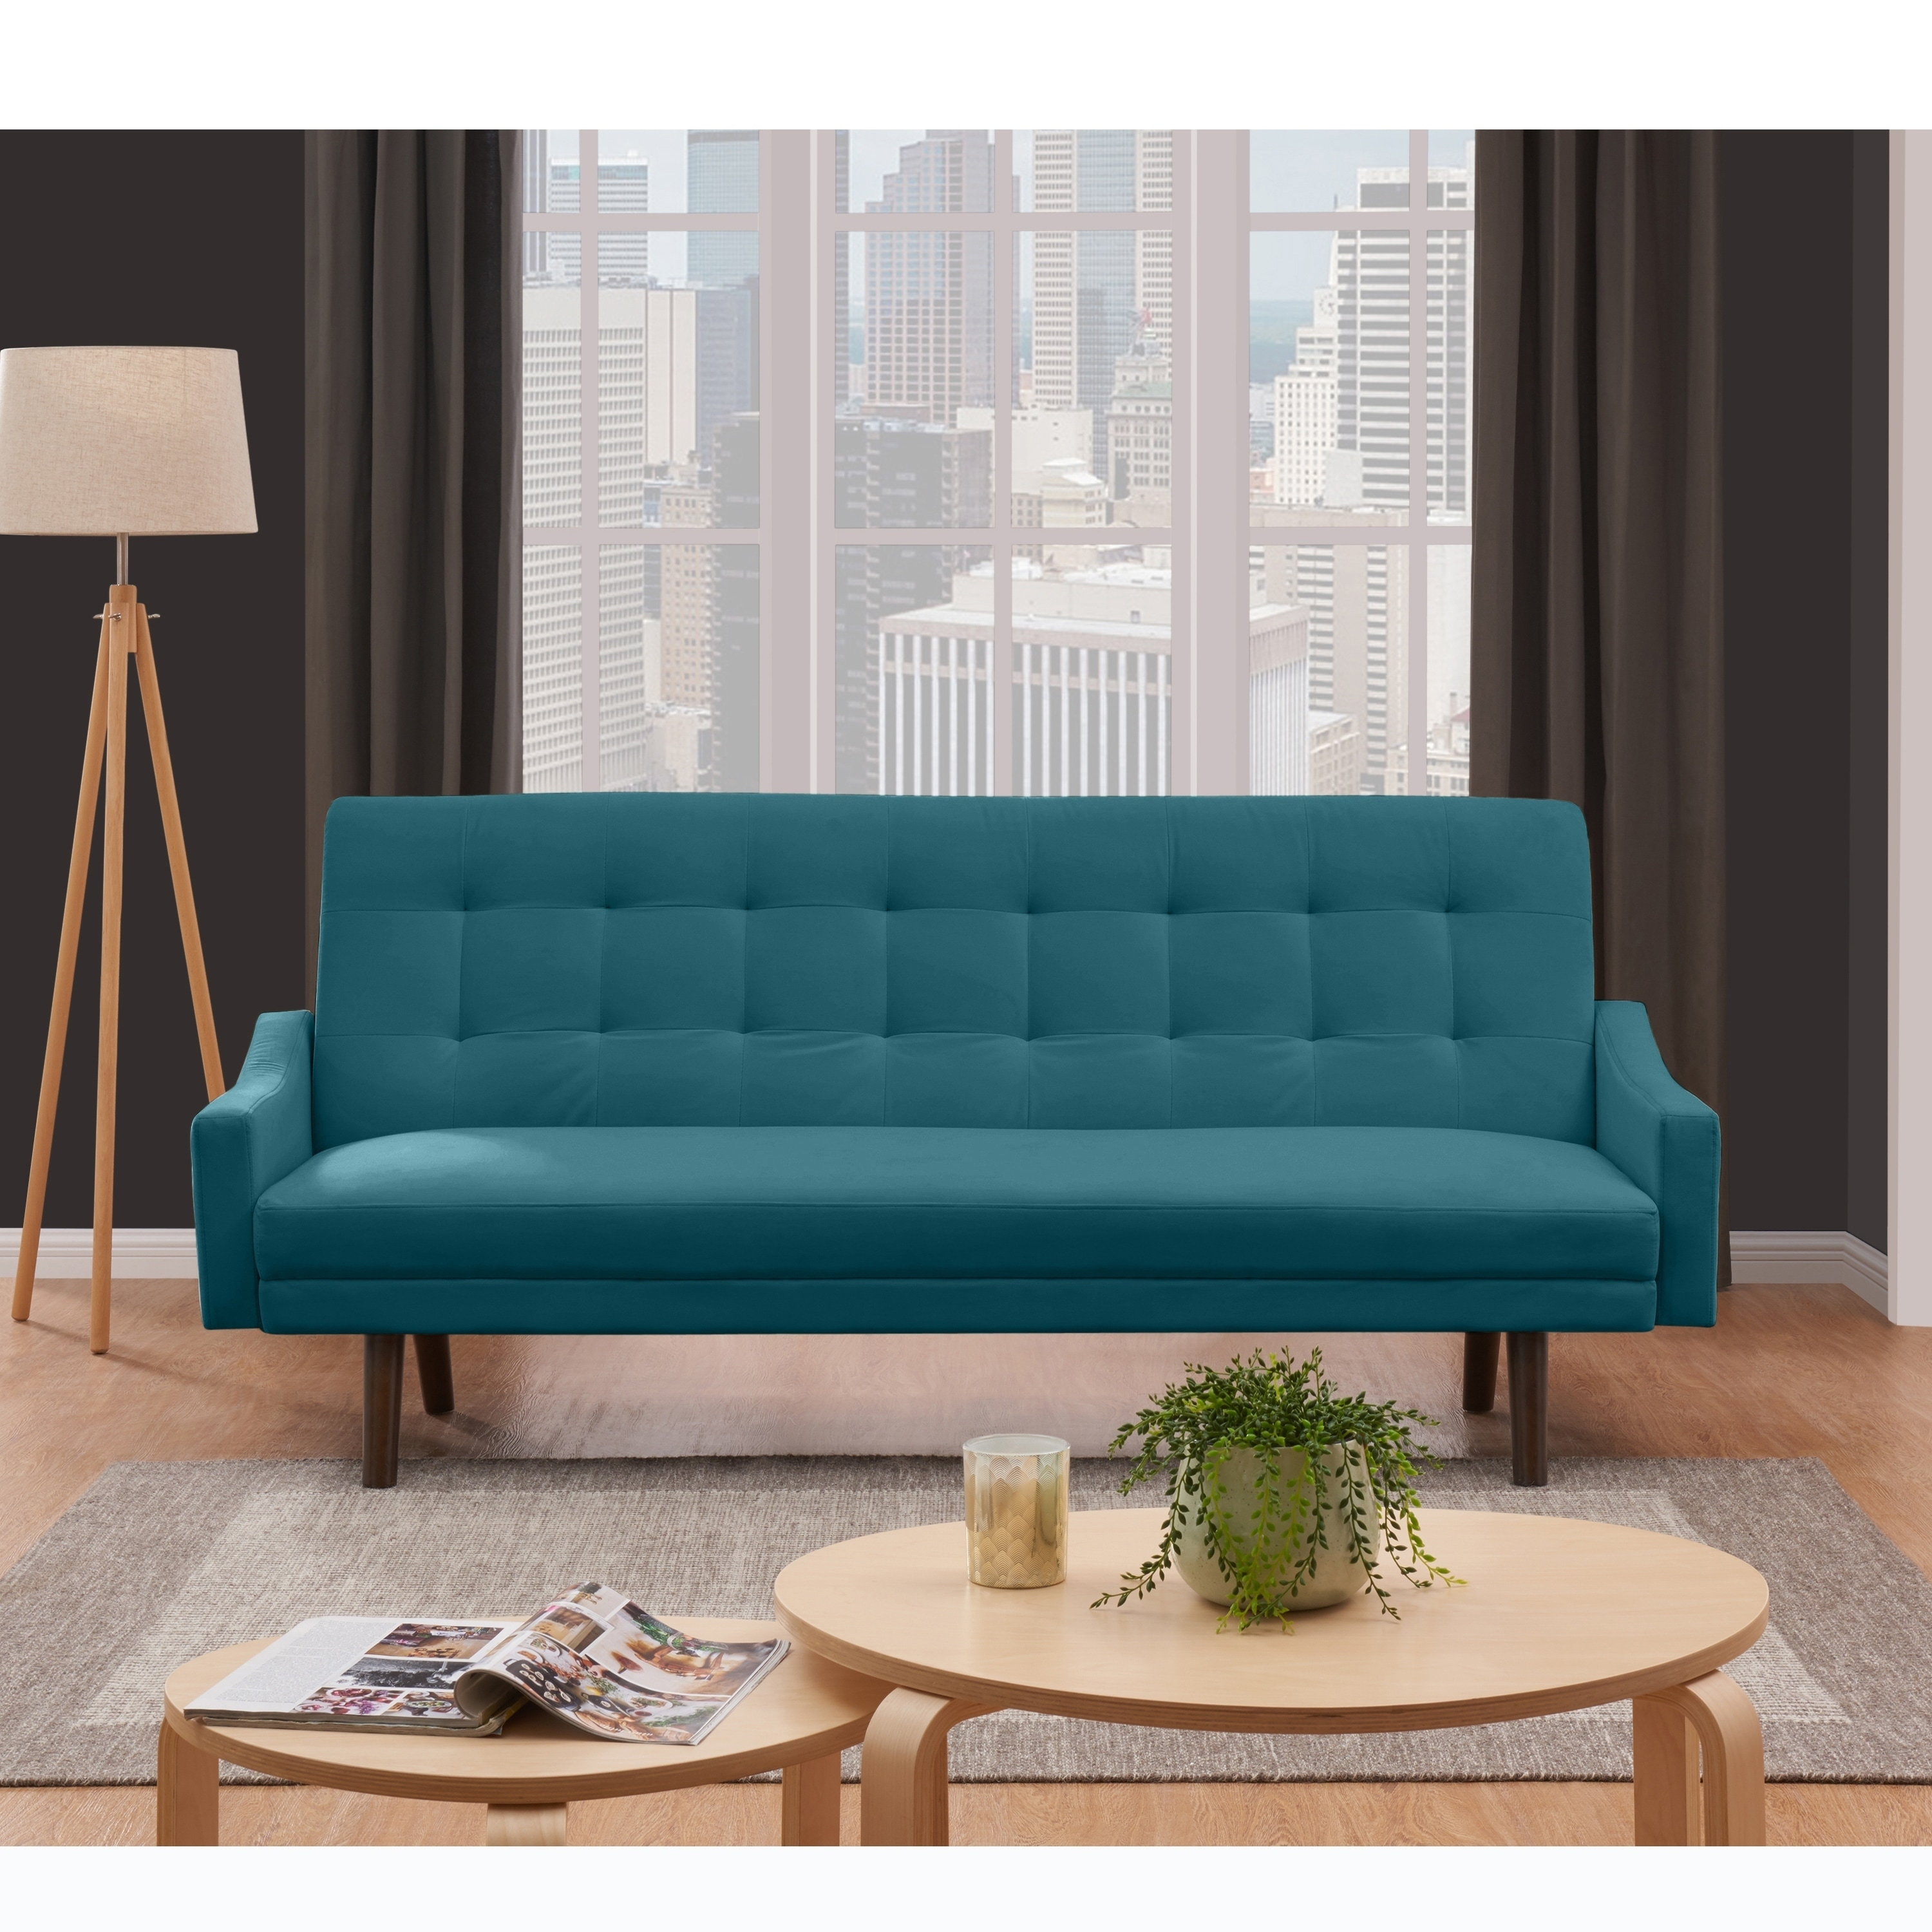 Futon World Berlin Buy Mid Century Modern Sofa Online At Overstock Our Best Living